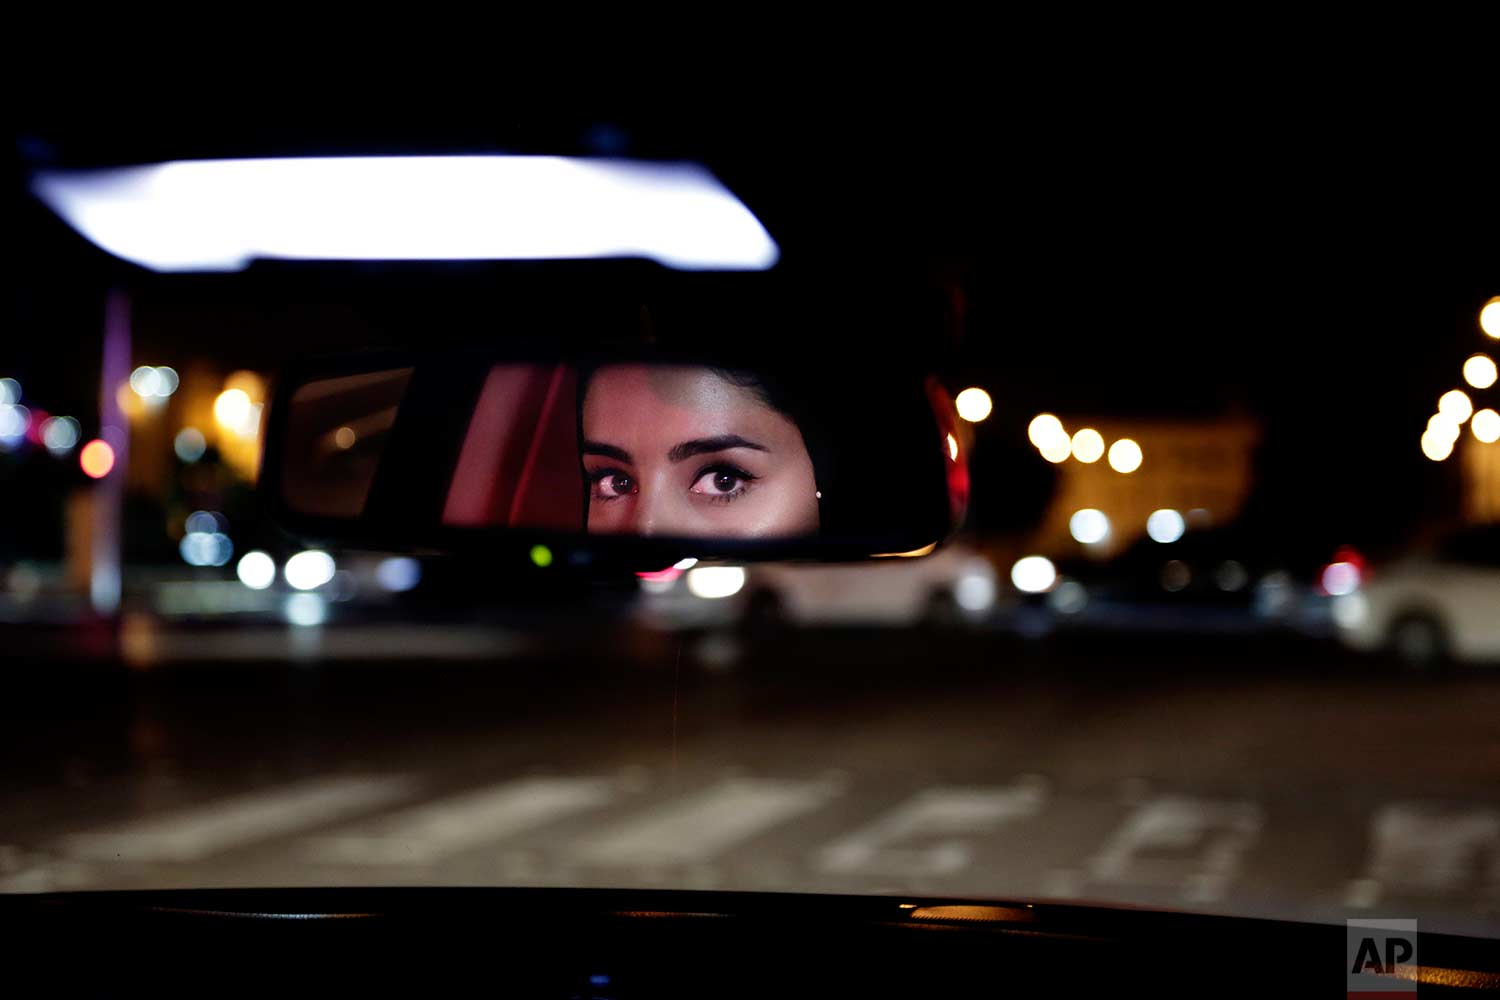 In this Sunday, June 24, 2018 photo, Hessah al-Ajaji drives her car down the capital's busy Tahlia Street after midnight for the first time, in Riyadh, Saudi Arabia. (AP Photo/Nariman El-Mofty)